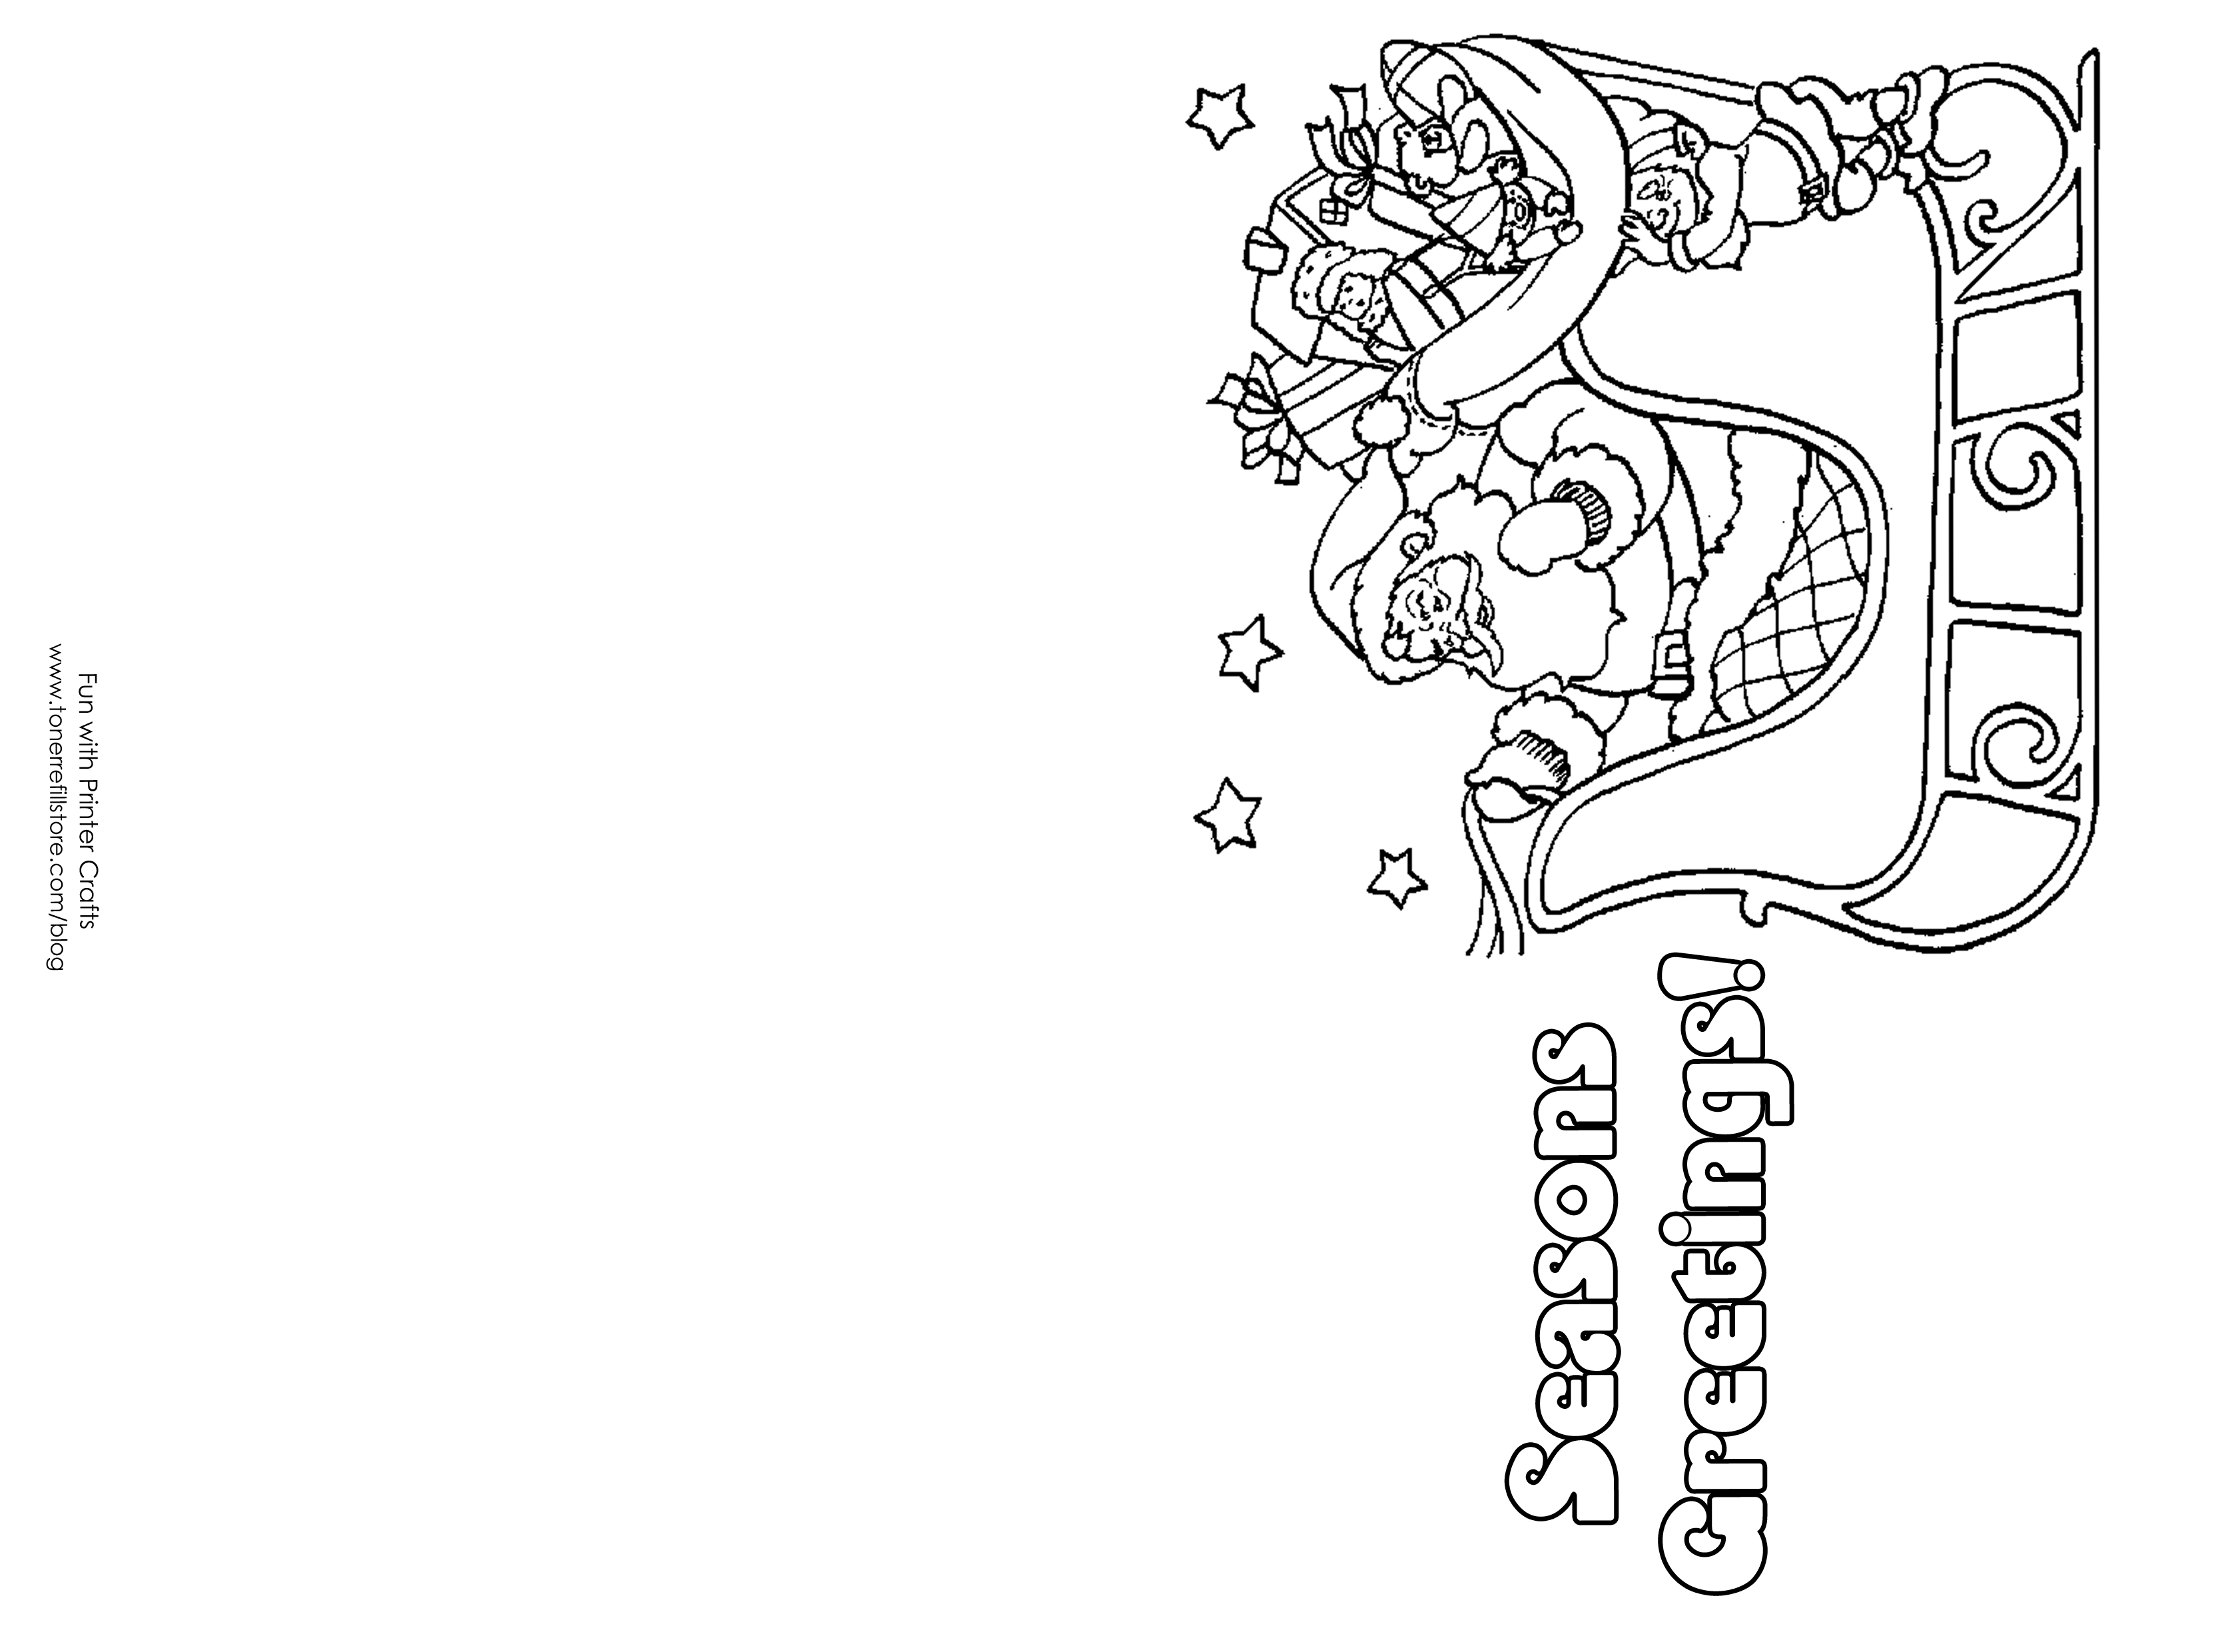 christmas cards printable to color how to make printable christmas cards for kids to color cards color christmas printable to